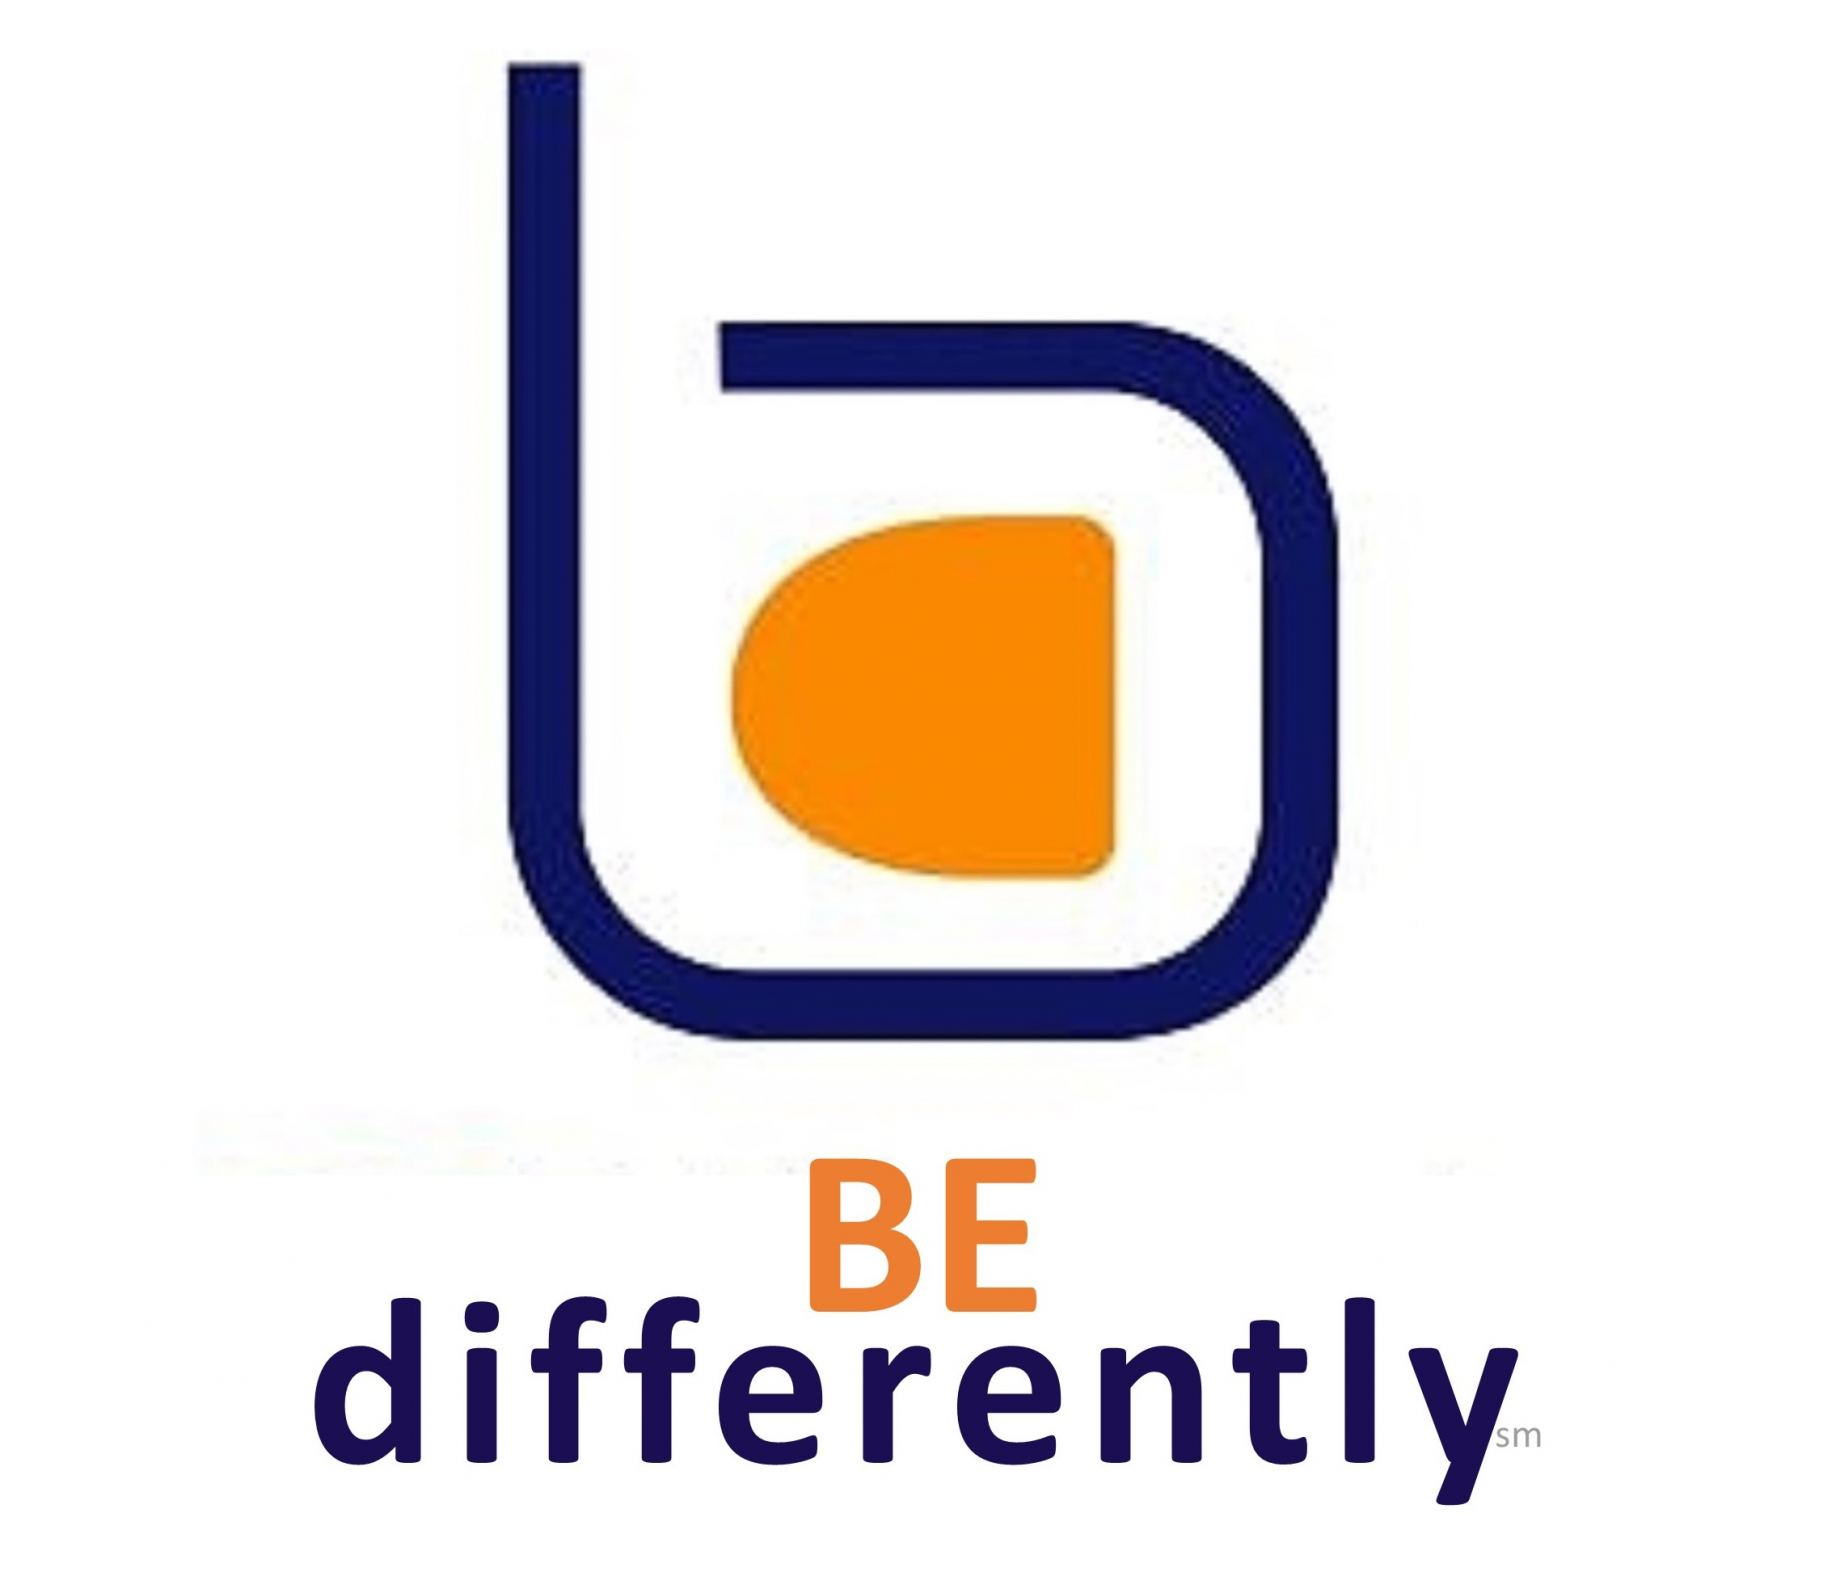 bedifferently Logo